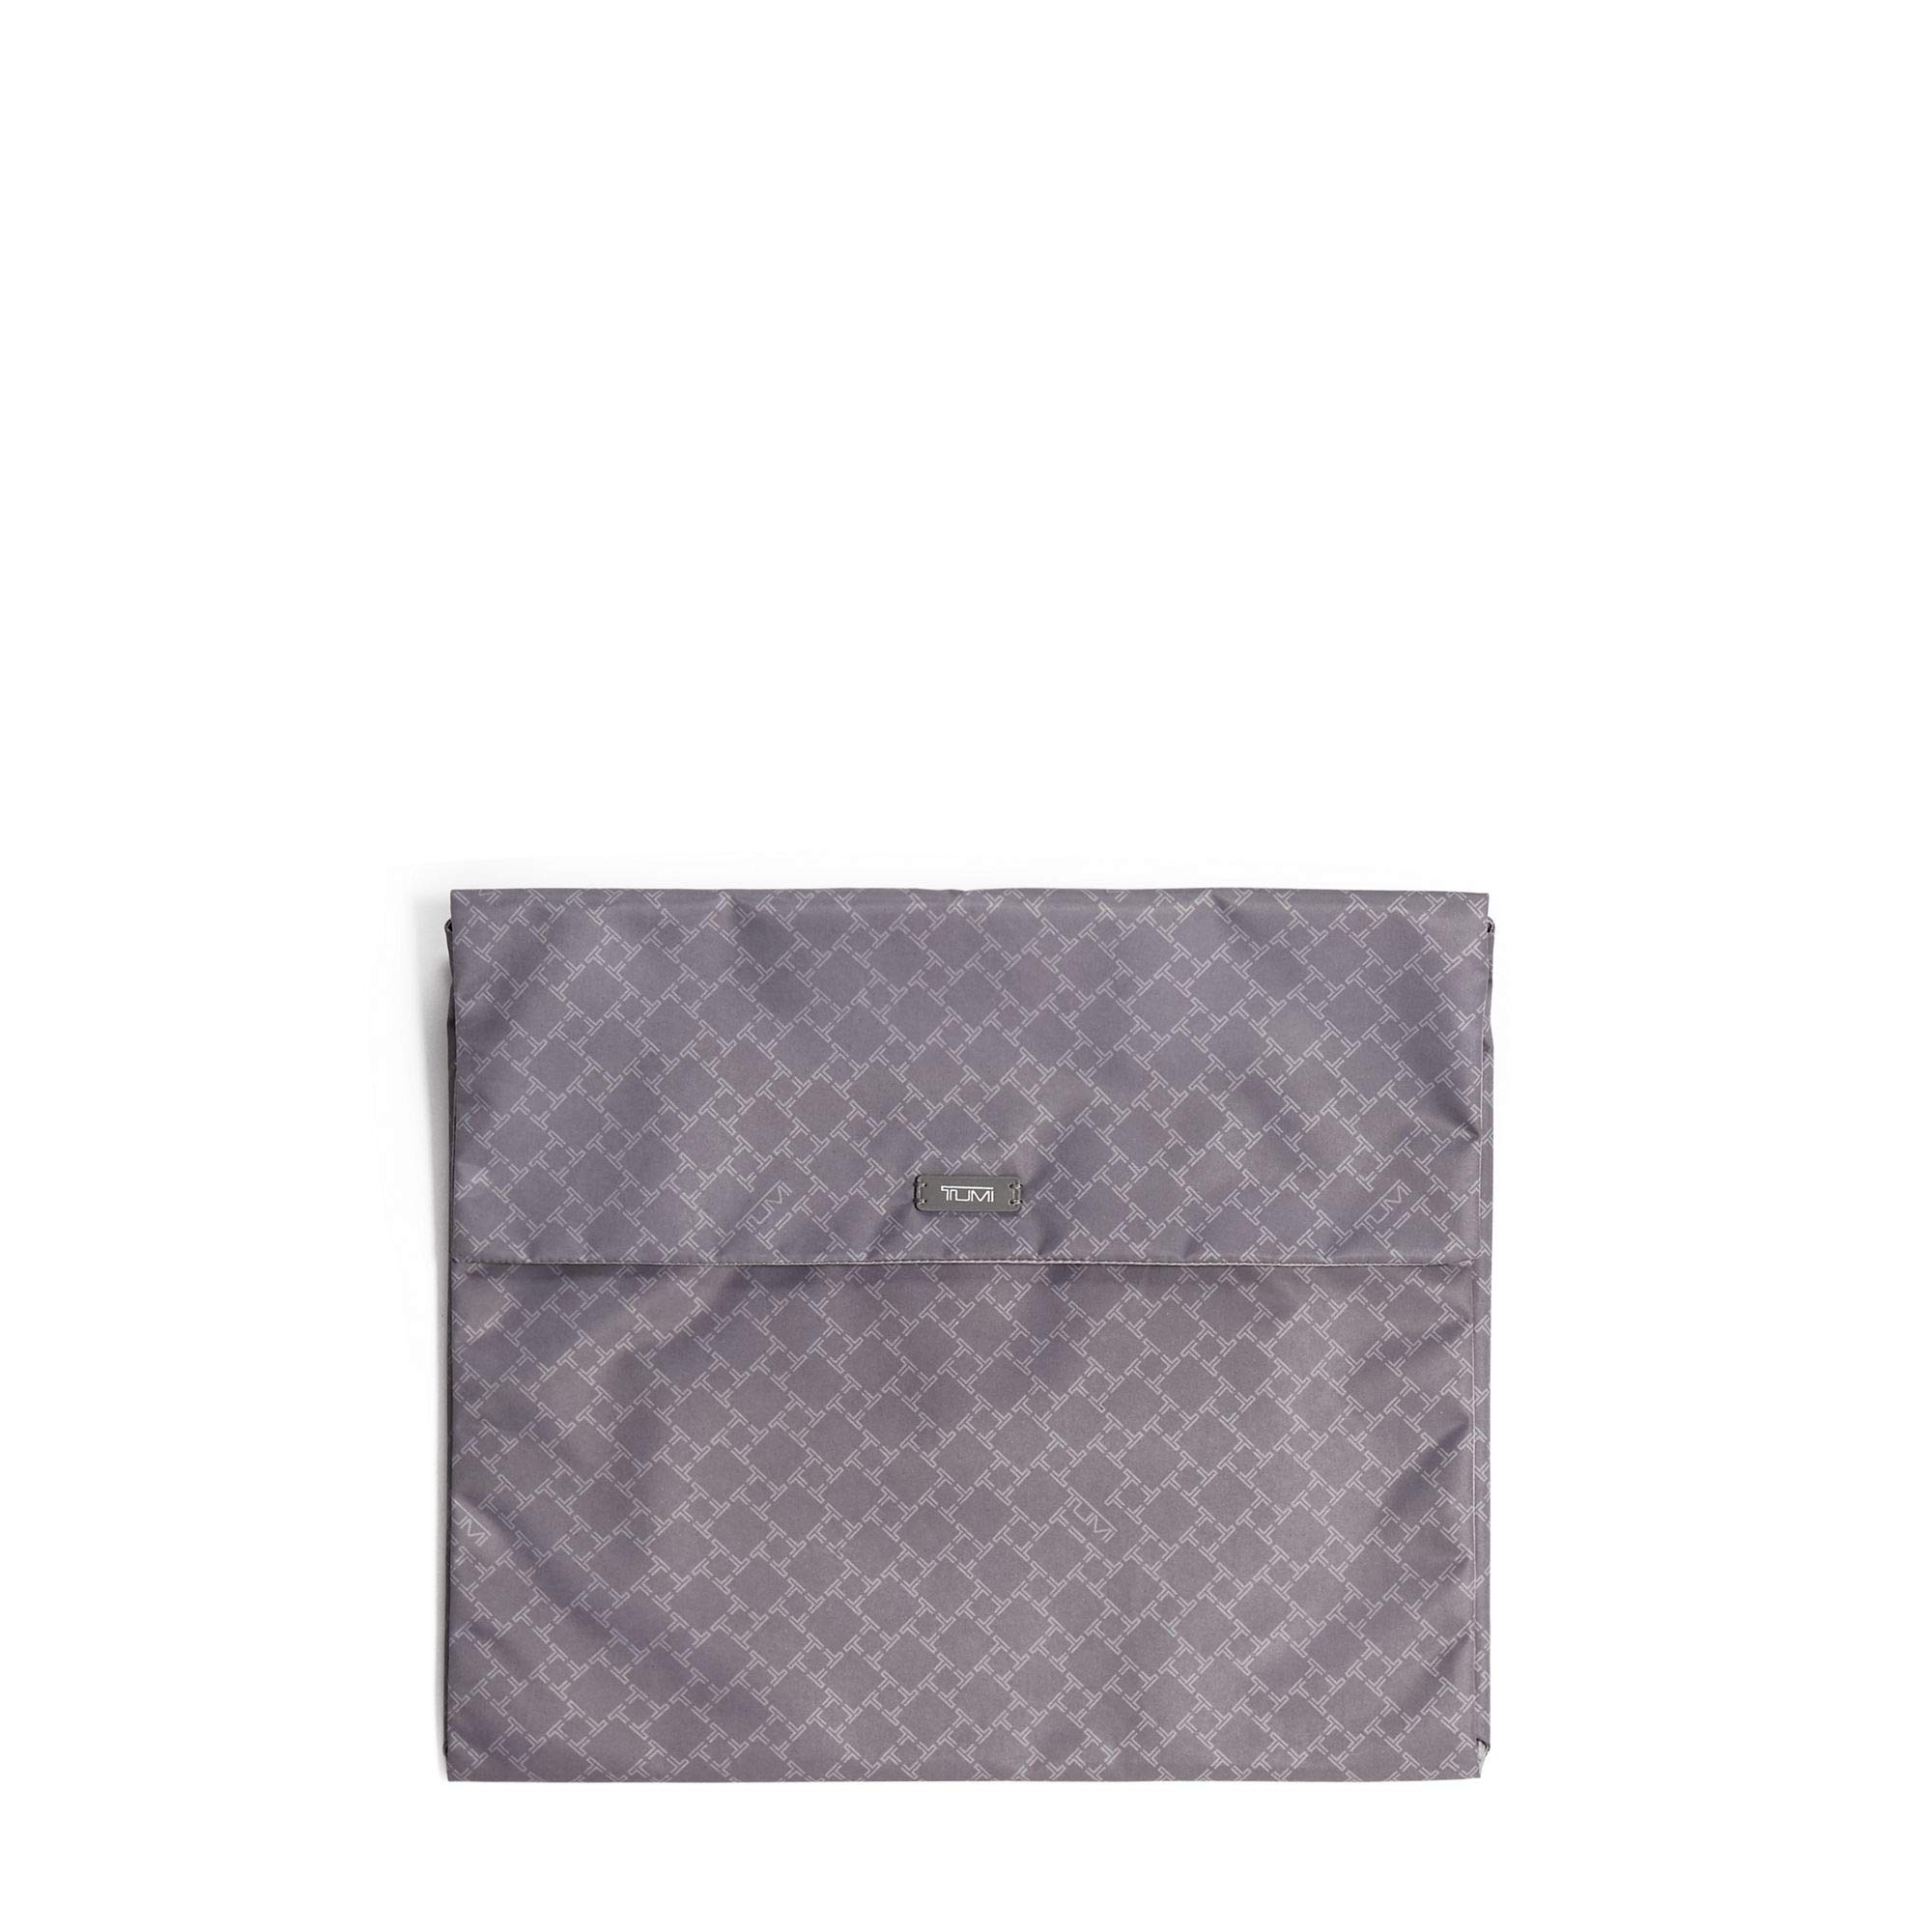 TUMI - Travel Accessories Flat Folding Pack - Luggage Organizer Packing Cubes - Grey by TUMI